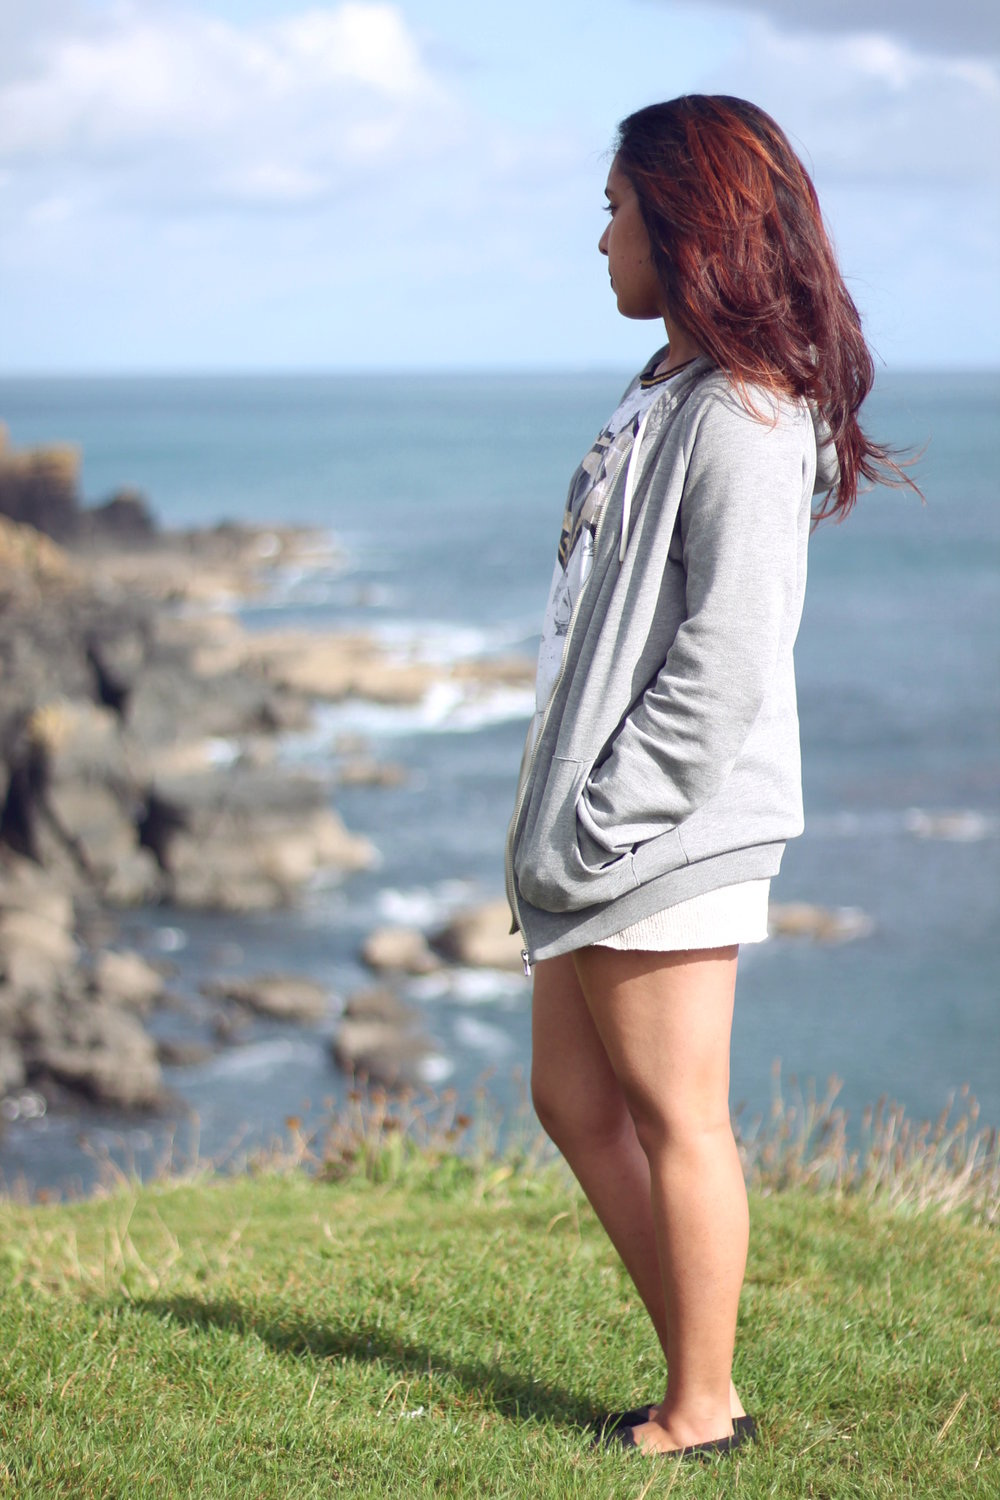 Gazing at the view at Lizard Point.